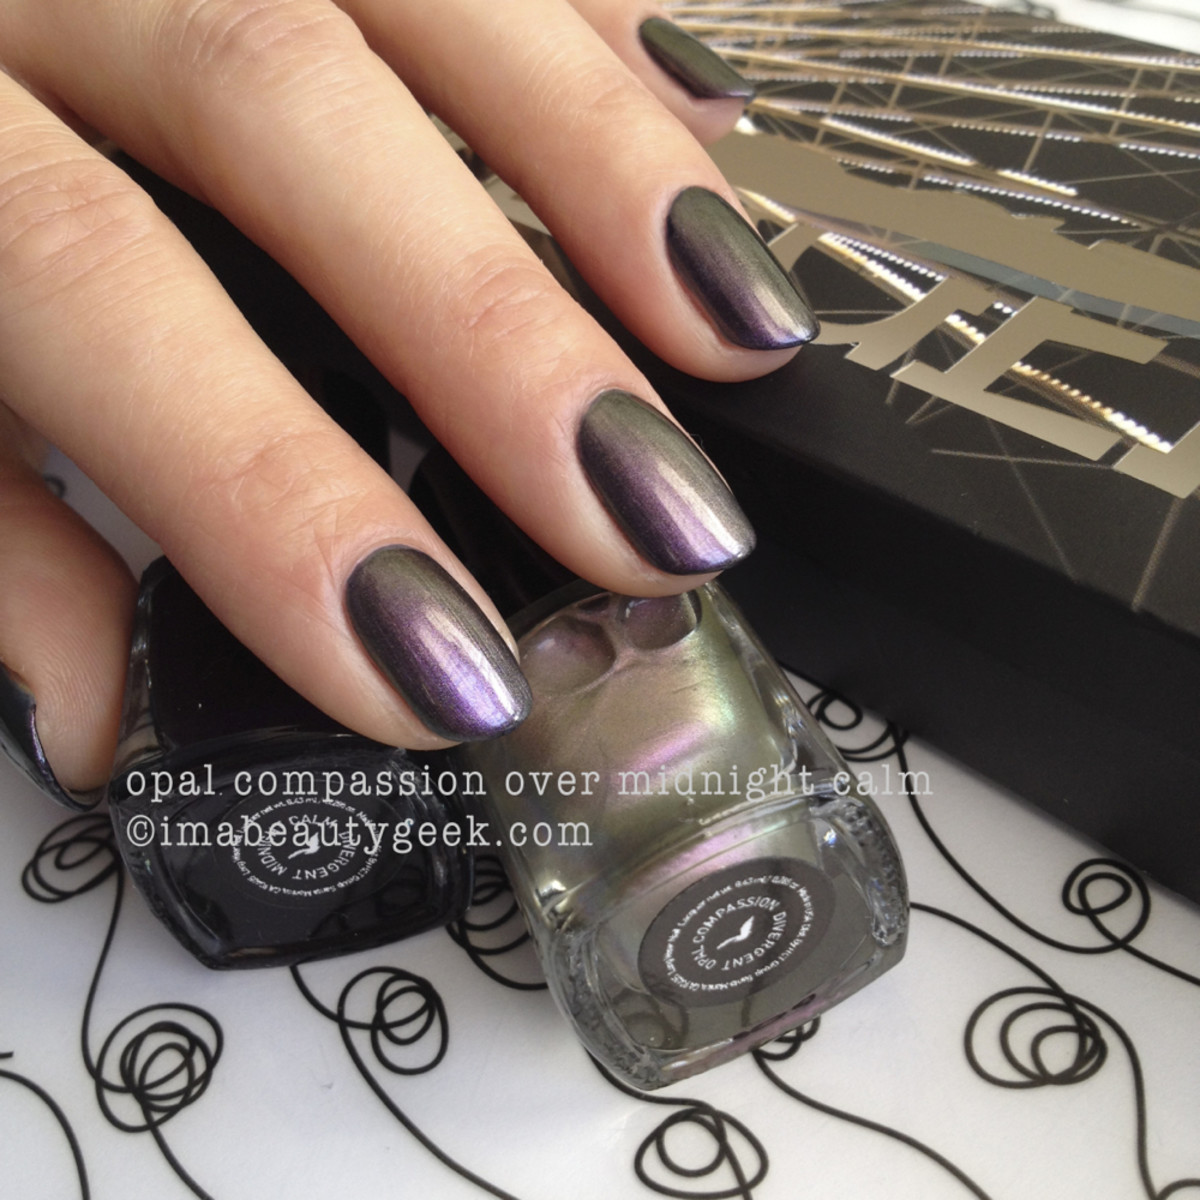 Divergent polish Opal Compassion over Midnight Calm_Divergent cosmetics